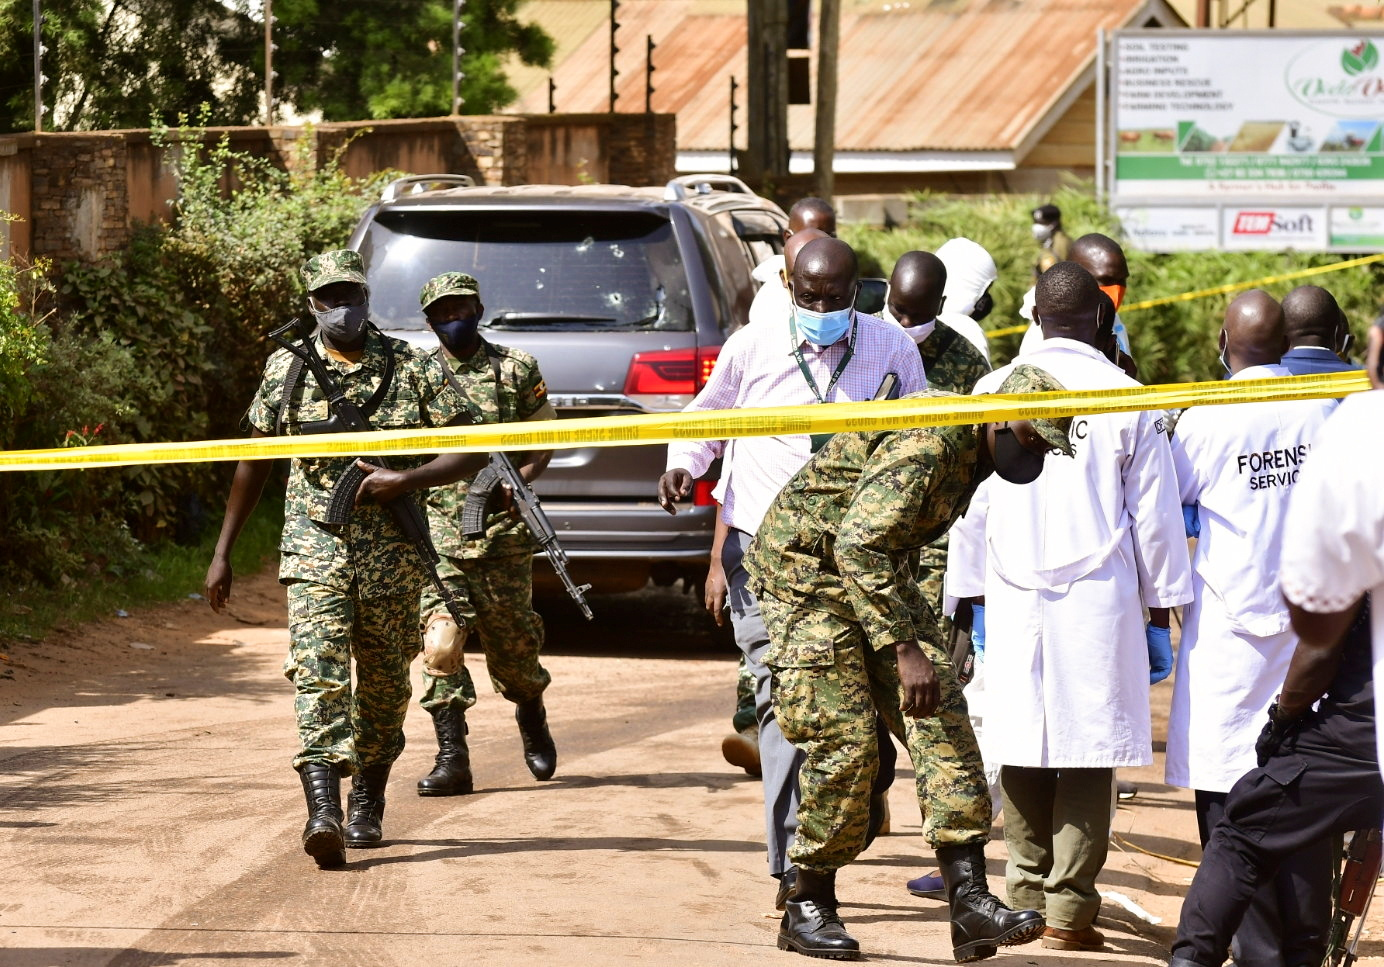 Security forces and forensic experts secure the scene of an attempted assassination on Ugandan minister of works and transport General Katumba Wamala in the suburb of Kiasasi within Kampala, Uganda June 1, 2021. REUTERS/Abubaker Lubowa